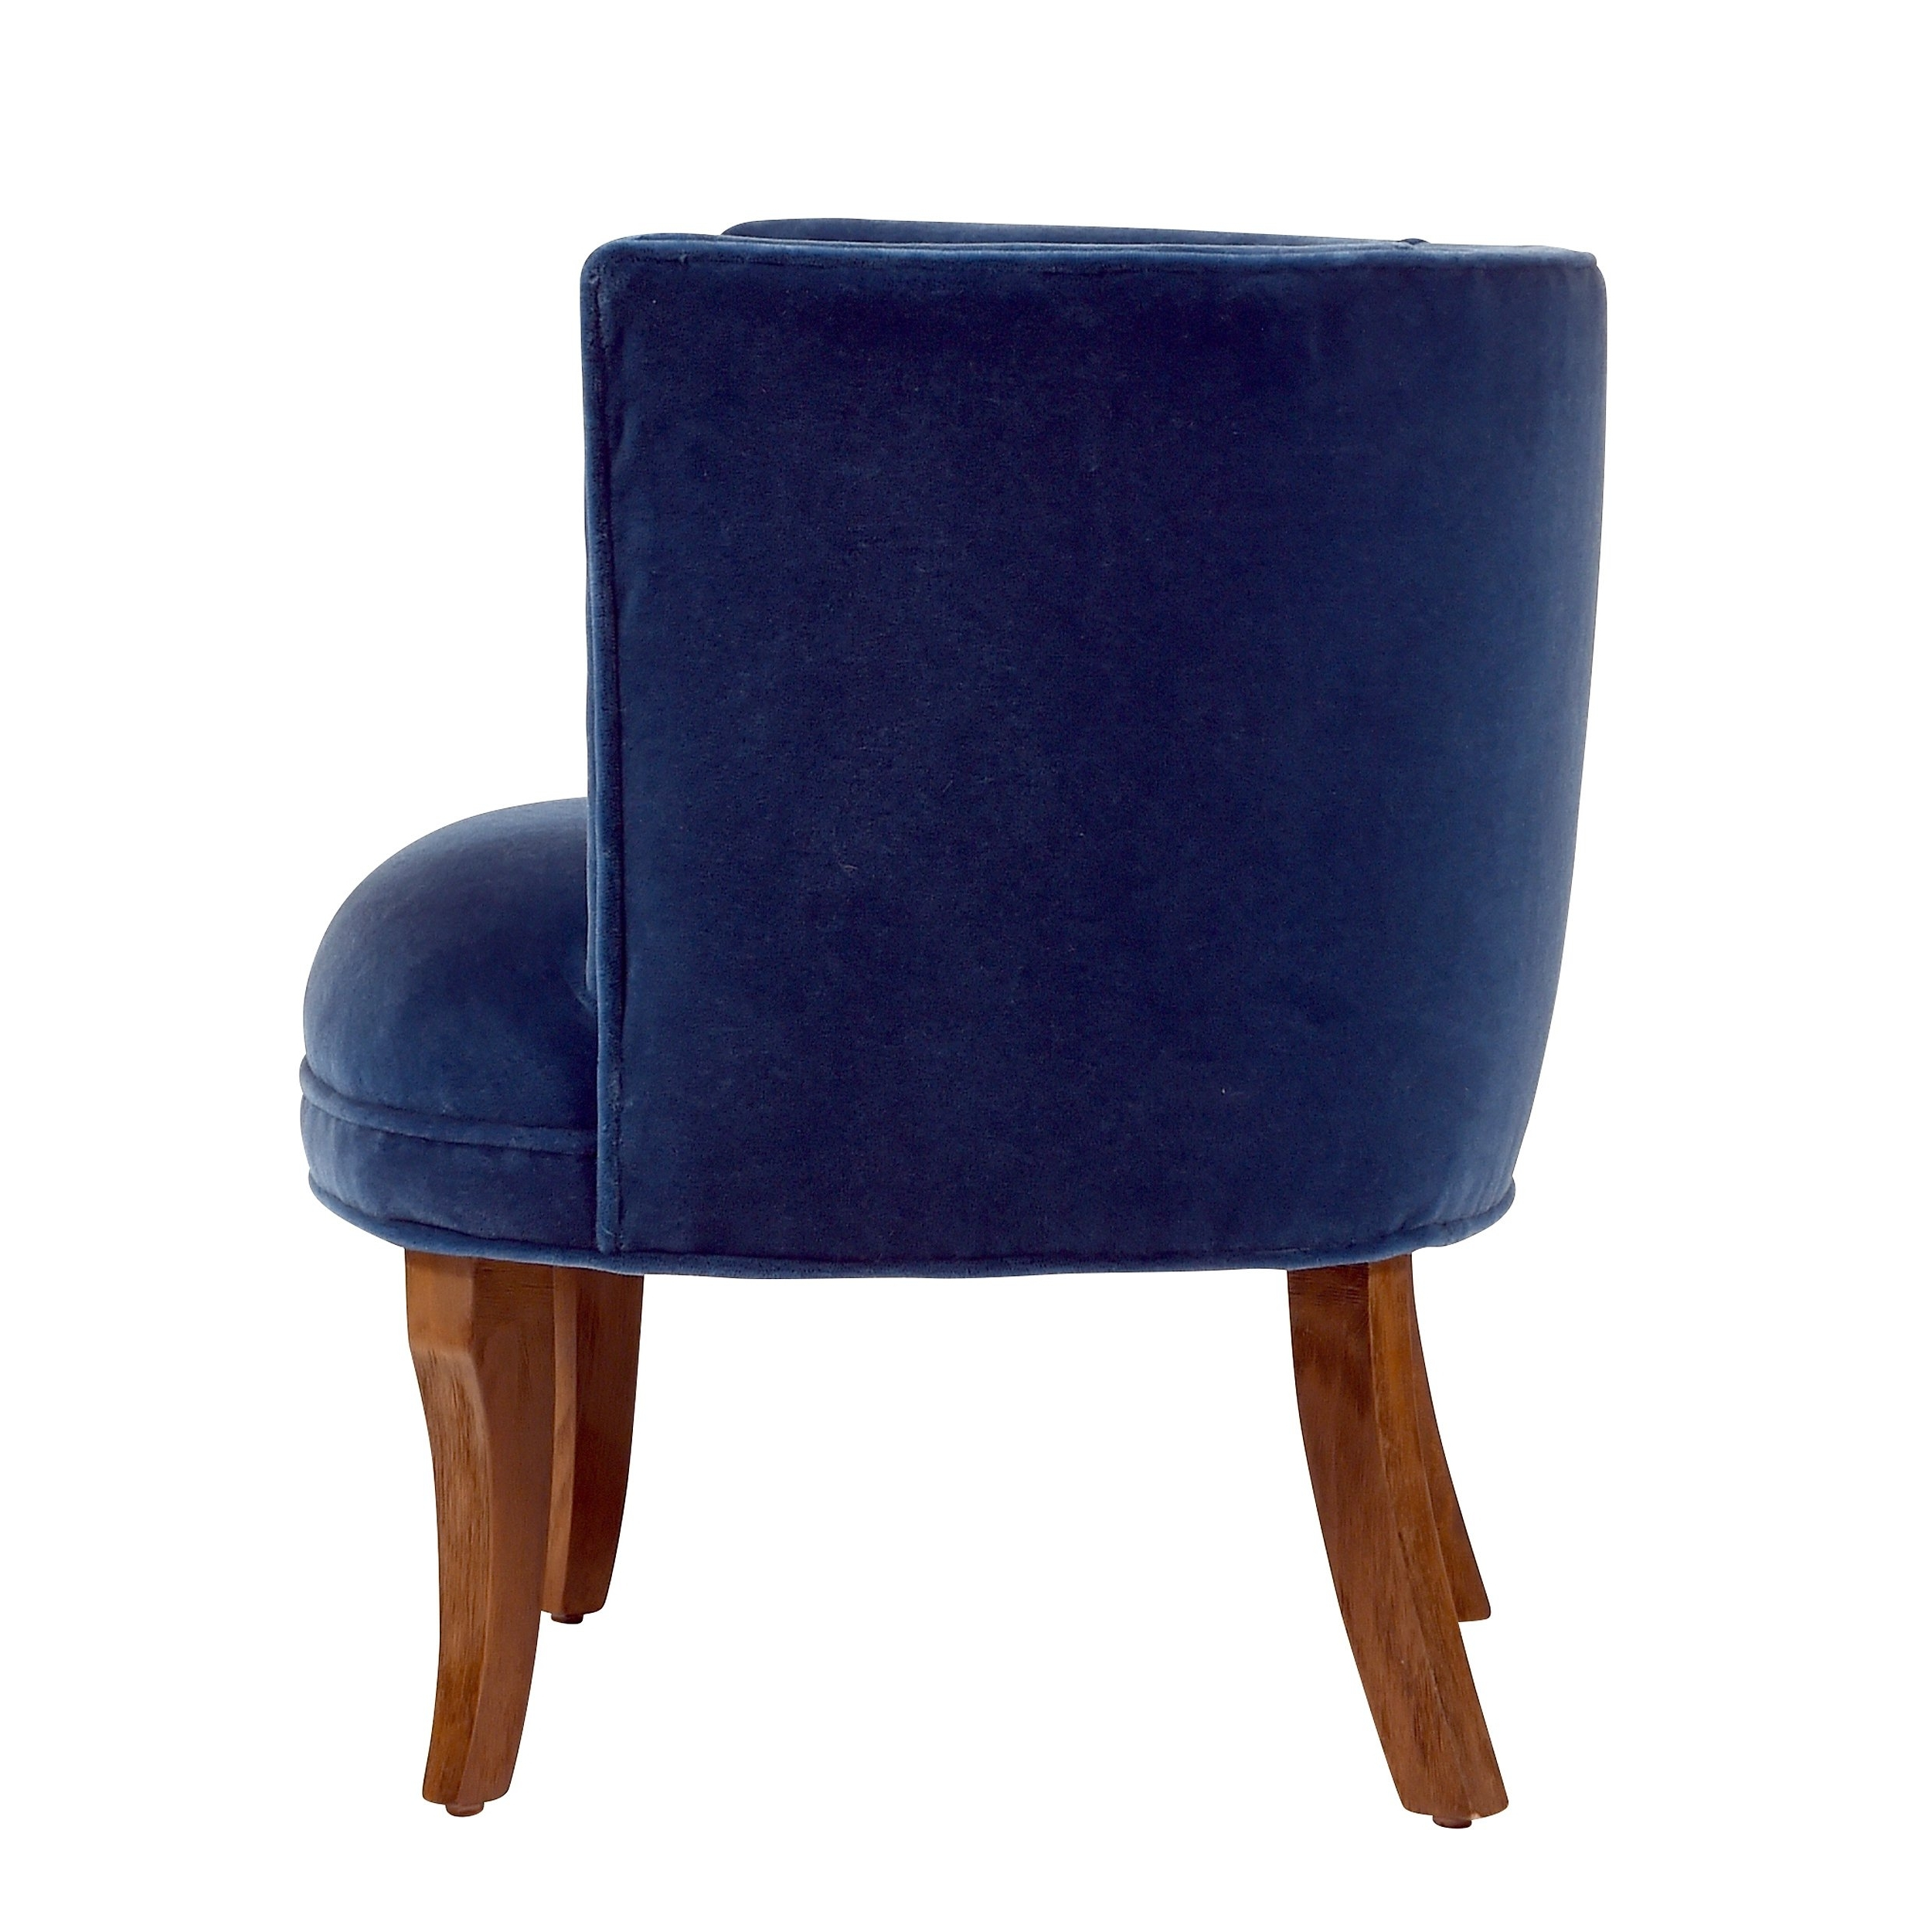 Latest Shop Jaxon Bella Navy Blue Velvet Upholstered Armchair – Free With Jaxon Grey Upholstered Side Chairs (Gallery 18 of 20)